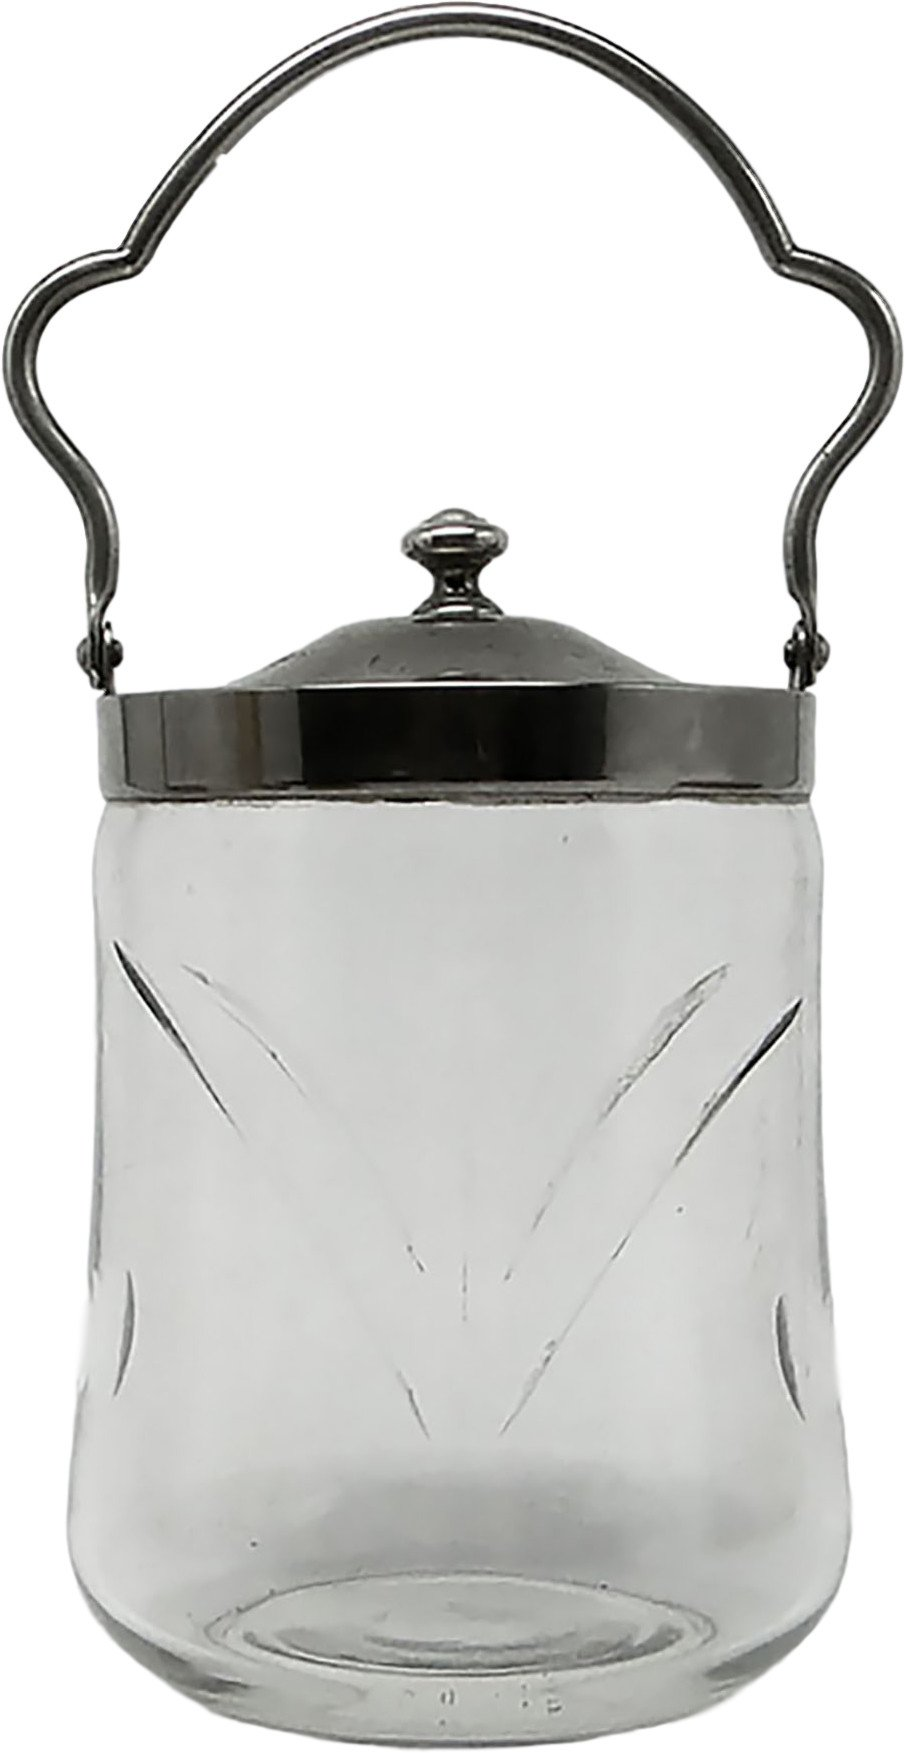 Container, Germany, 1930s